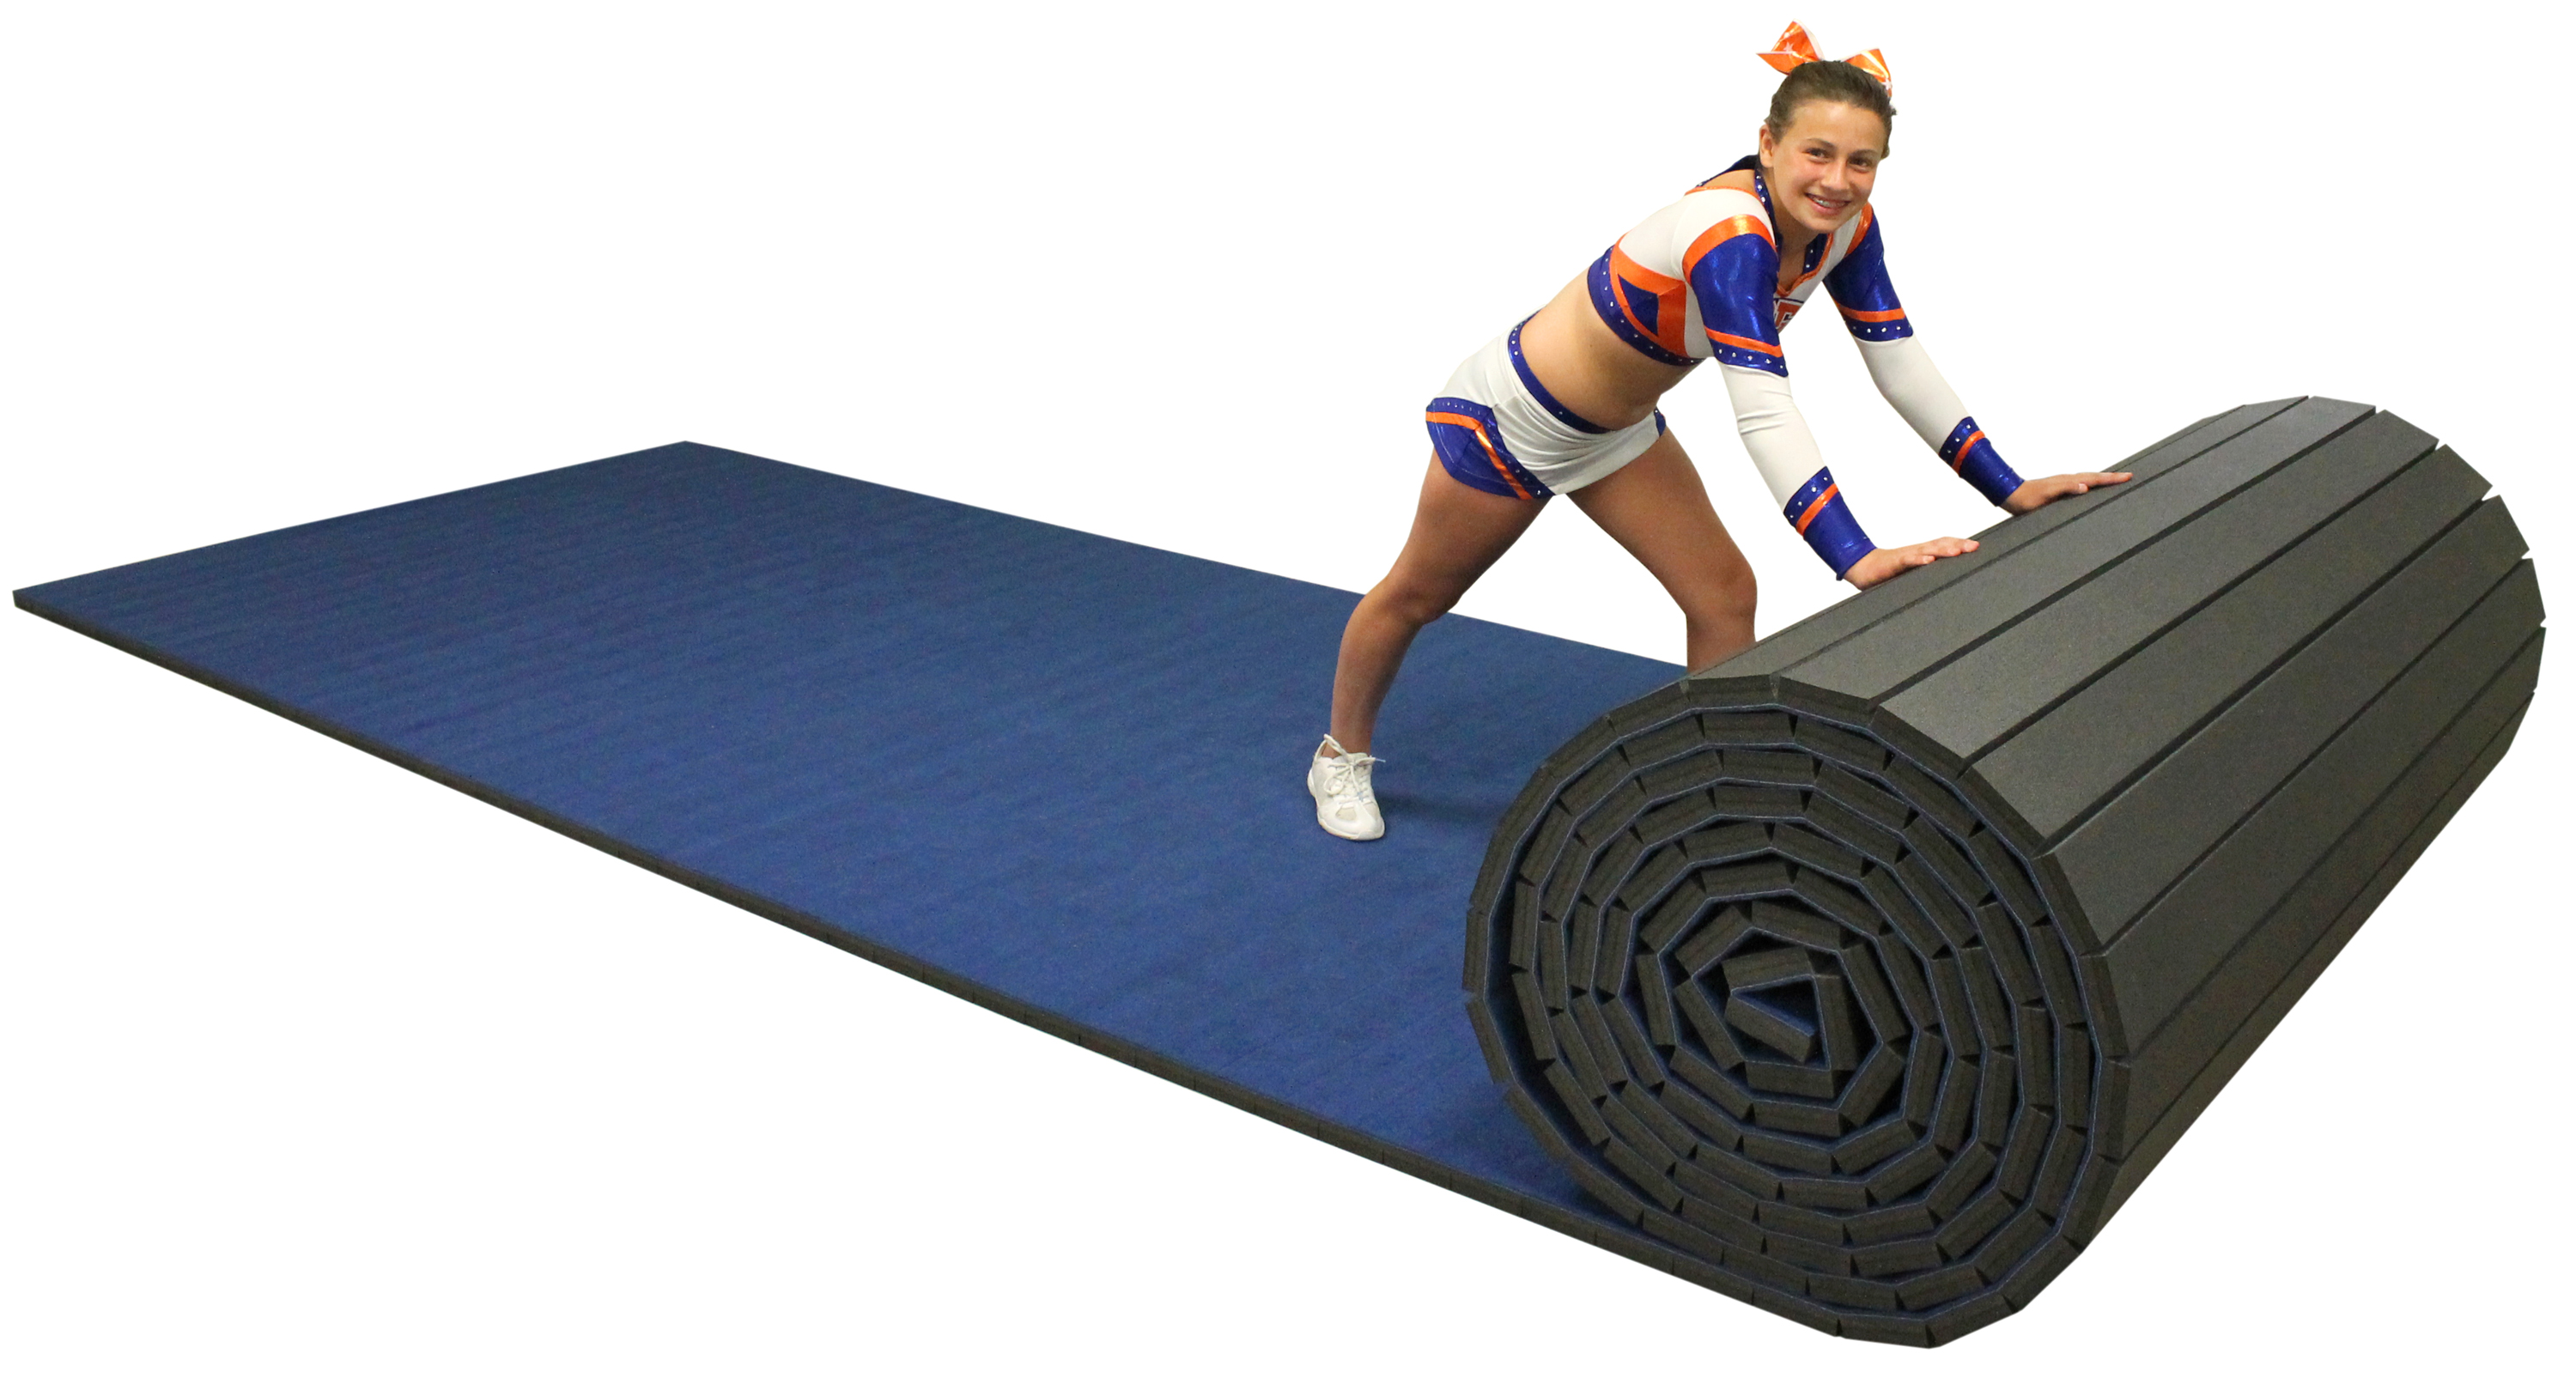 mats home better pin for pinterest gymnastic cheer gymnastics use